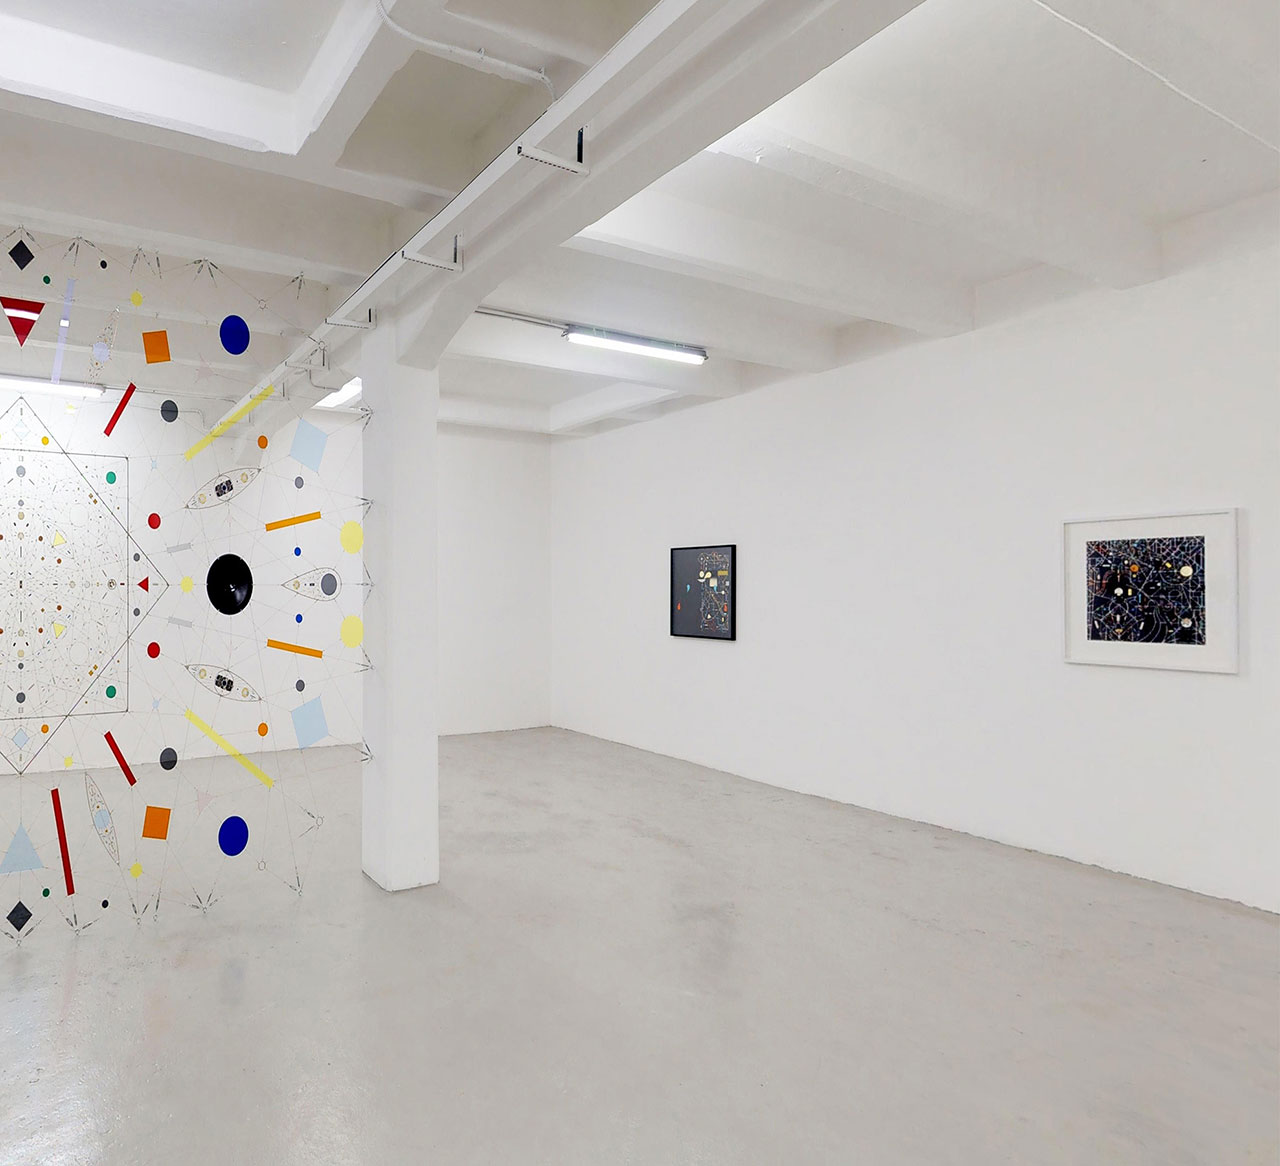 Leonardo ULIAN, Perpetual nexus. View of the show. Courtesy: The Flat – Massimo Carasi. Photo by The Flat.